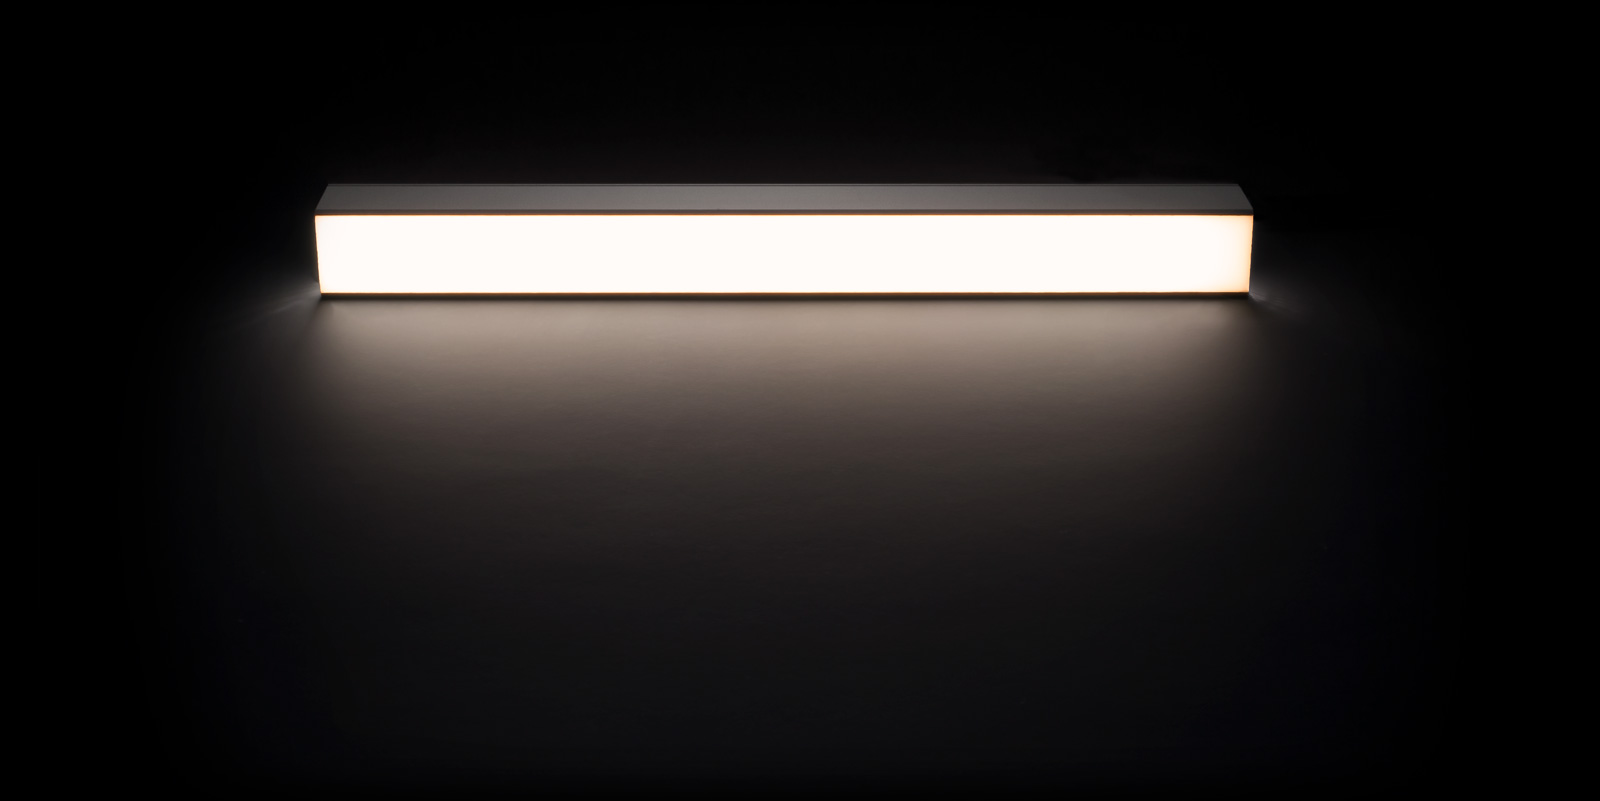 IP67 rated RGB+White for outdoor applications with NICHIA LED strip lights